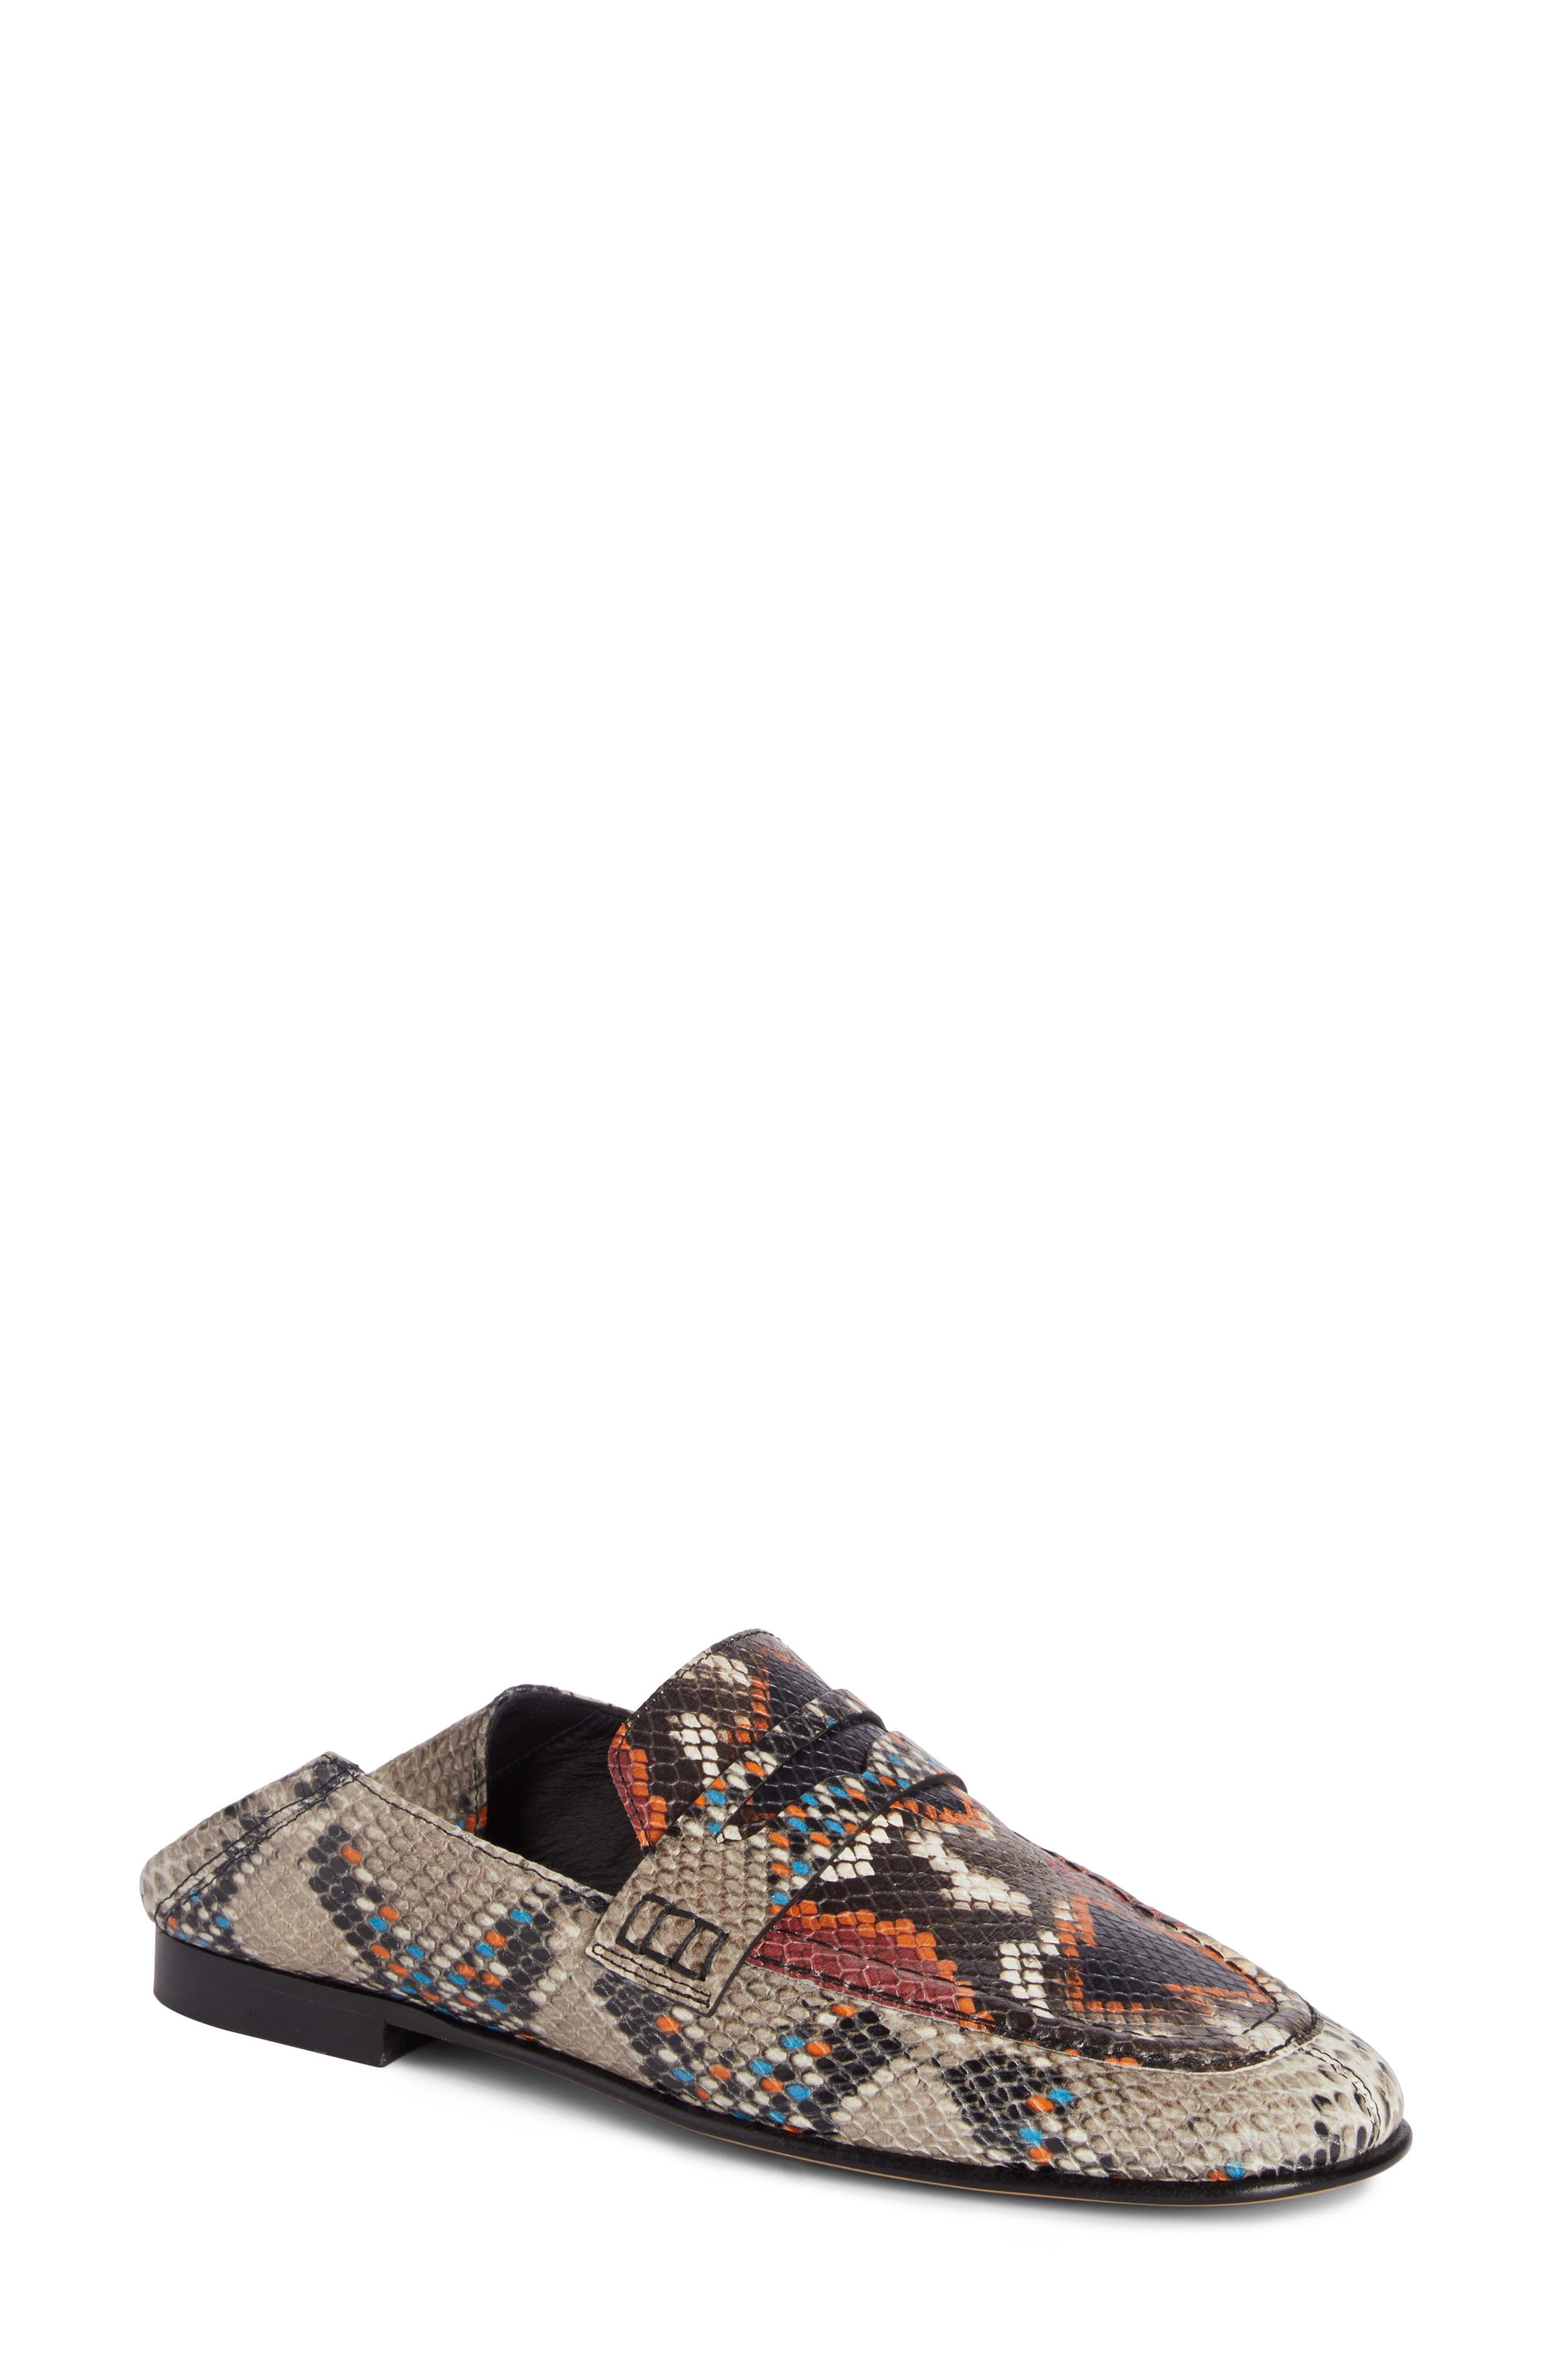 Main Image - Isabel Marant Fezzy Snakeskin Embossed Convertible Loafer (Women)